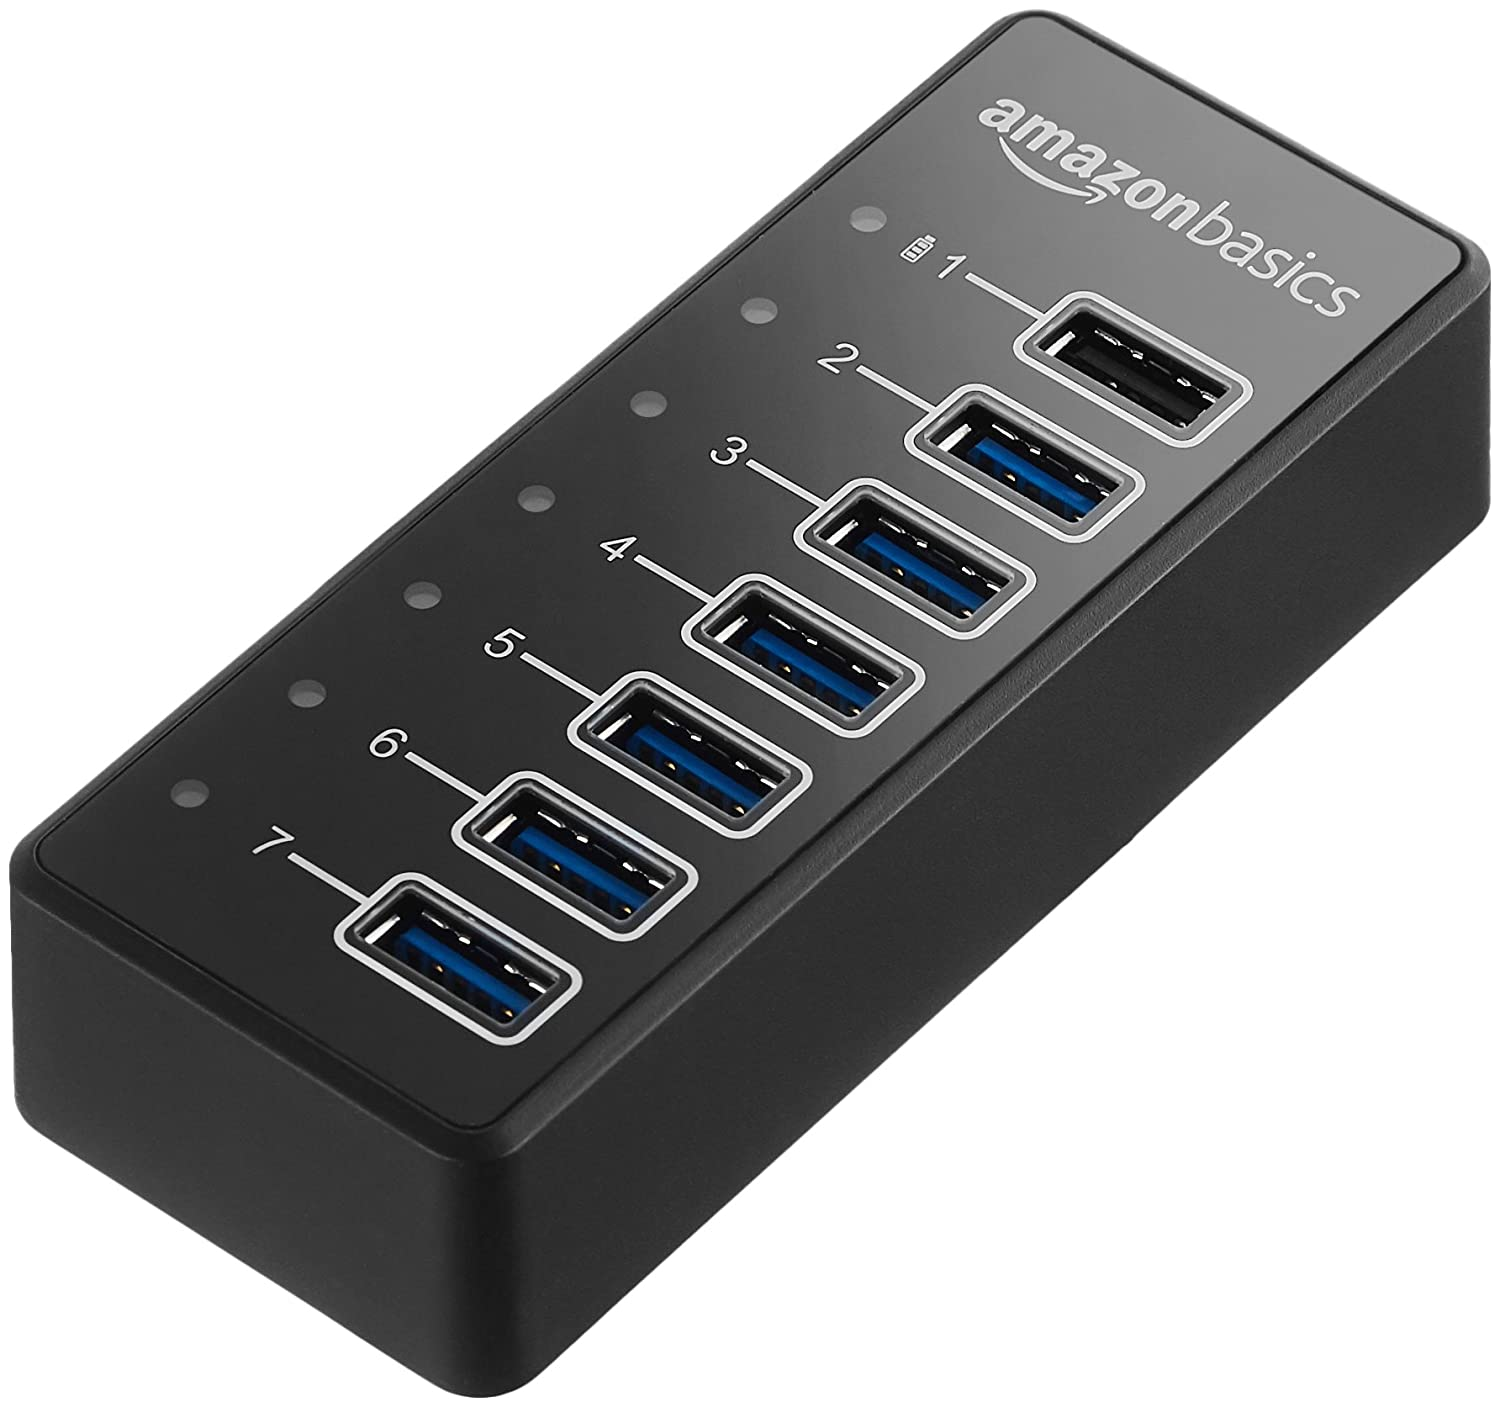 AmazonBasics USB-A 3.1 7-Port Hub with Power Adapter - 36W (12V/3A), Black